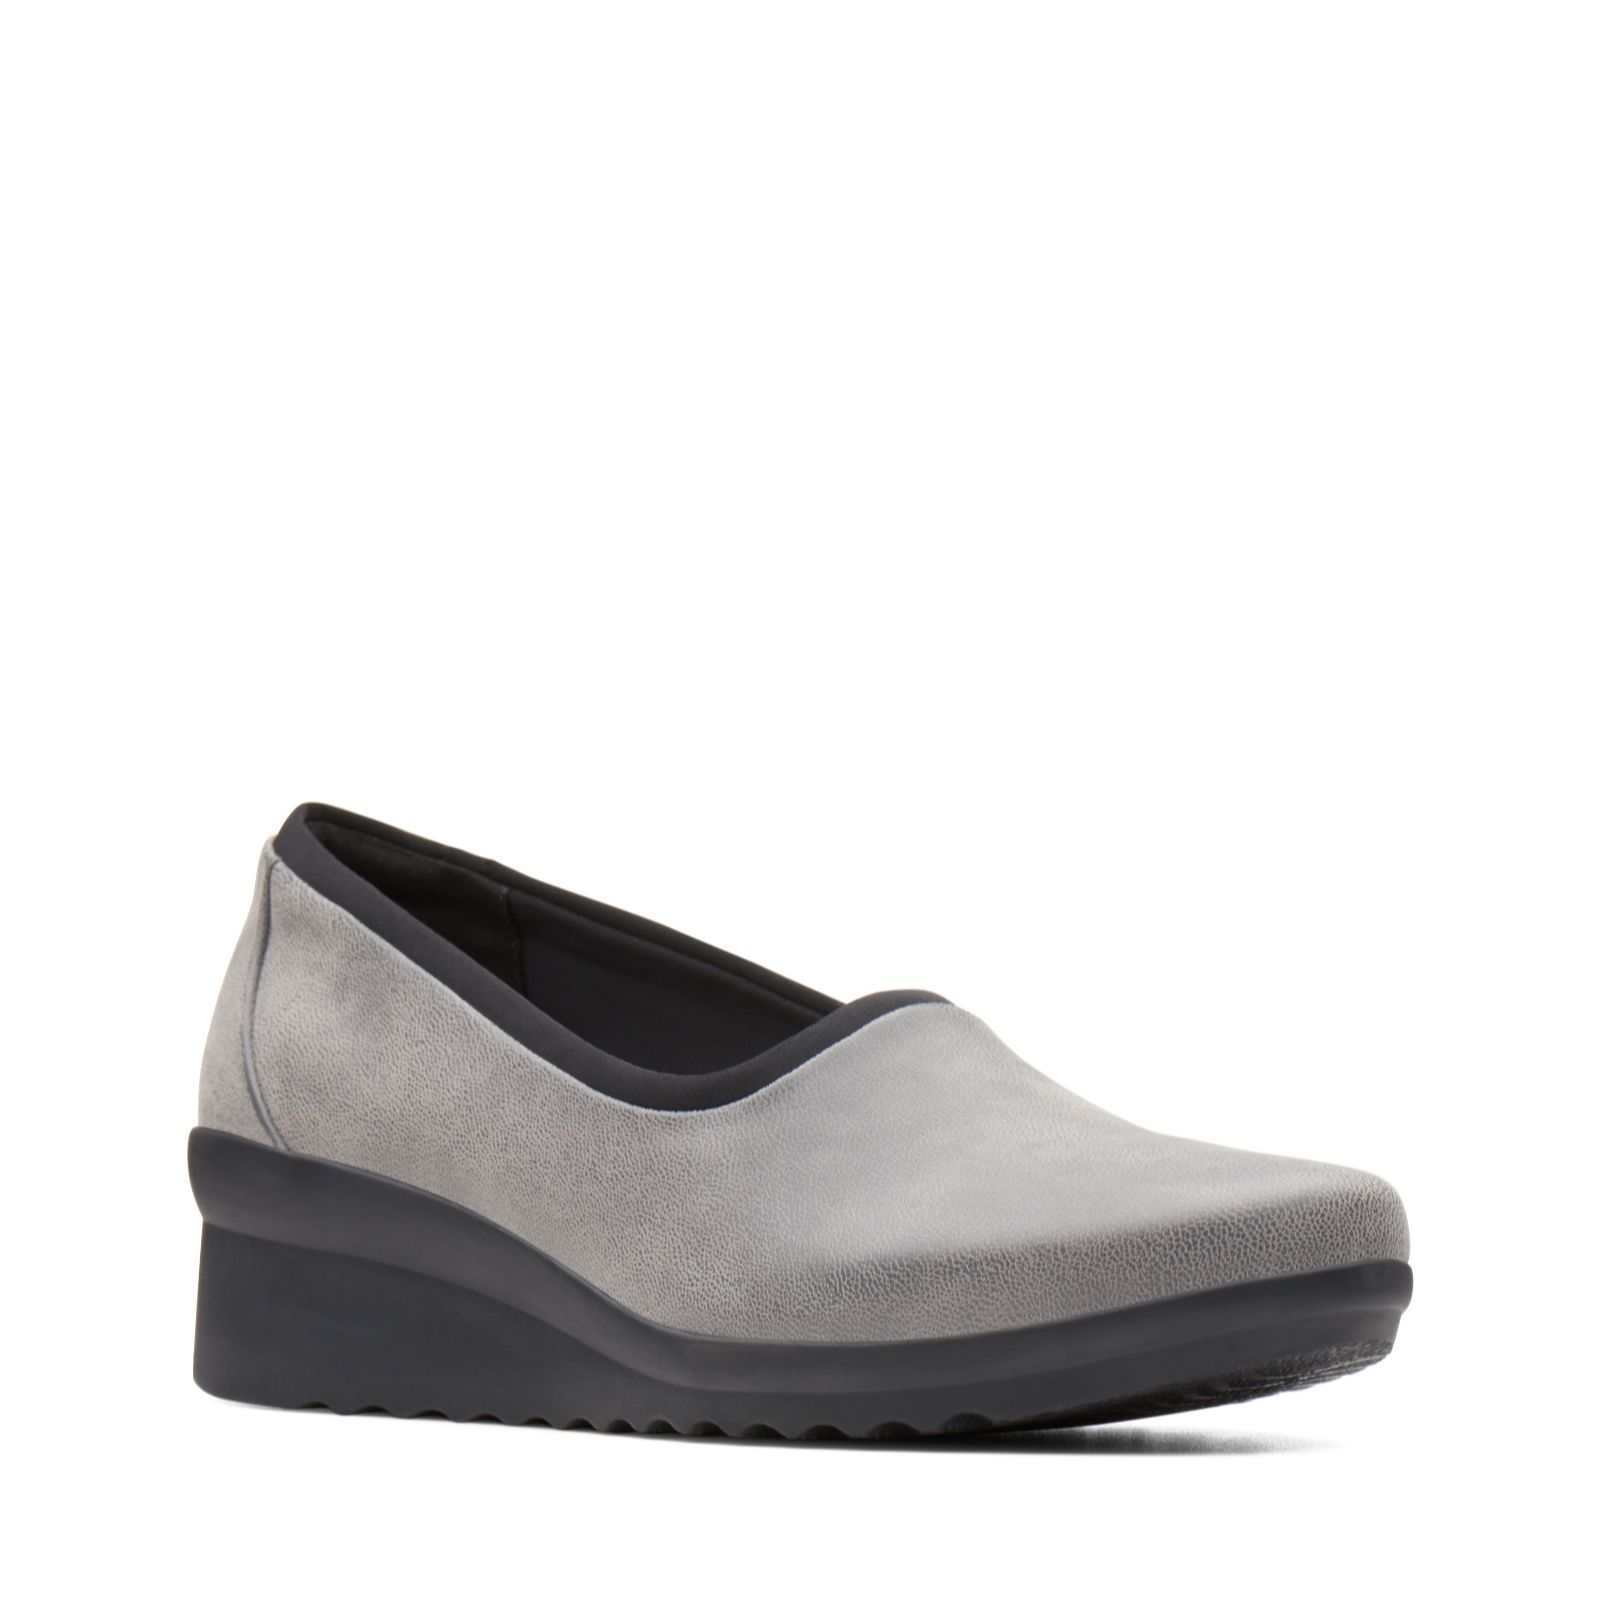 ed094ac8b564 Clarks Caddell Jaylin Synthetic Wedge Shoe Standard Fit - QVC UK